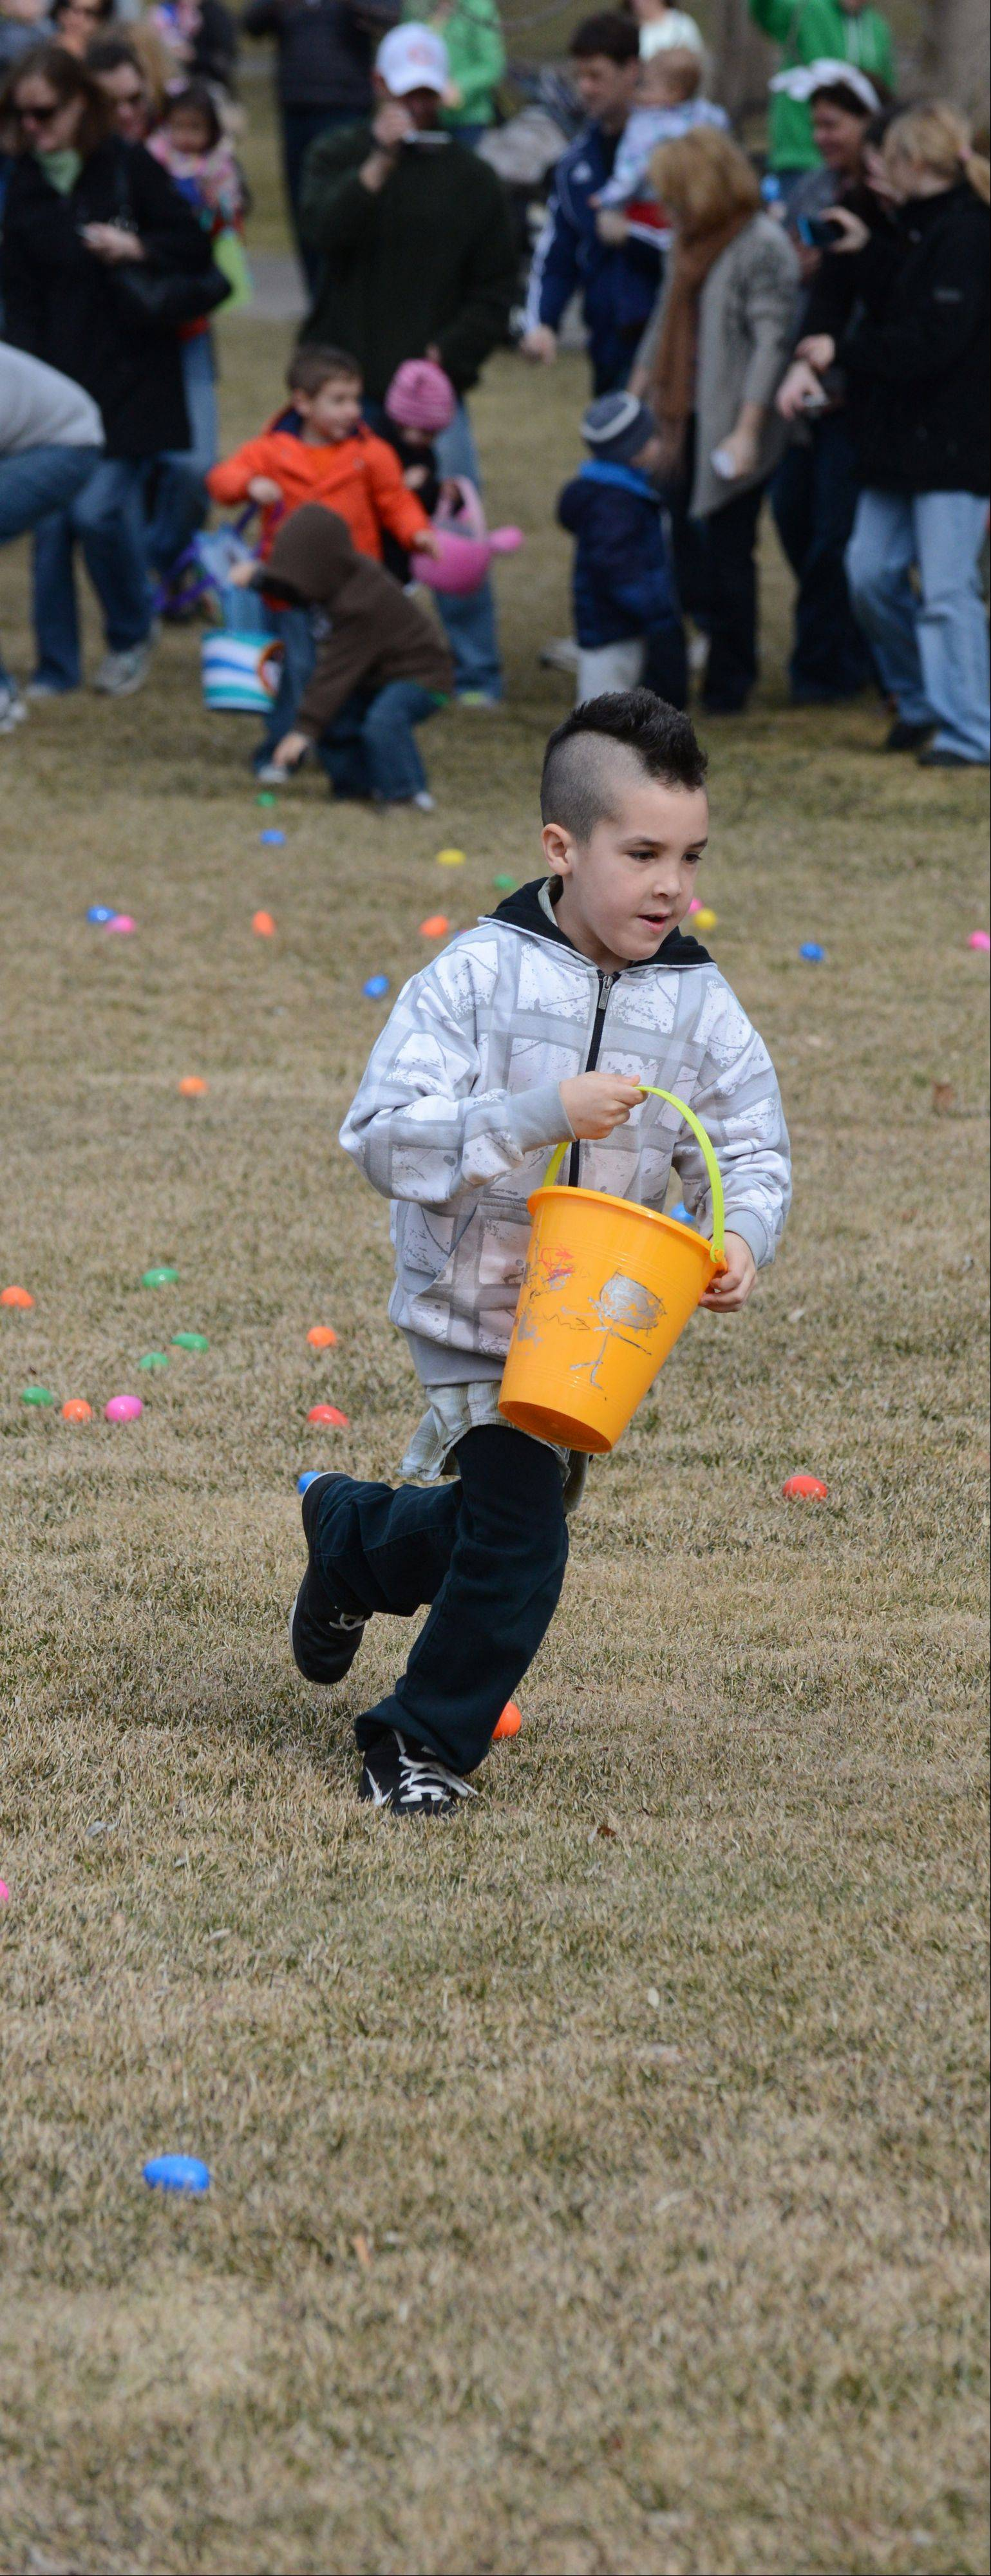 KJ Dawson,8, of Wheaton hunted for colored eggs on the lawn of the Robert R. McCormick Museum at Cantigny Park in Wheaton Saturday. The Easter Bunny and a petting zoo were also there for the children to visit.